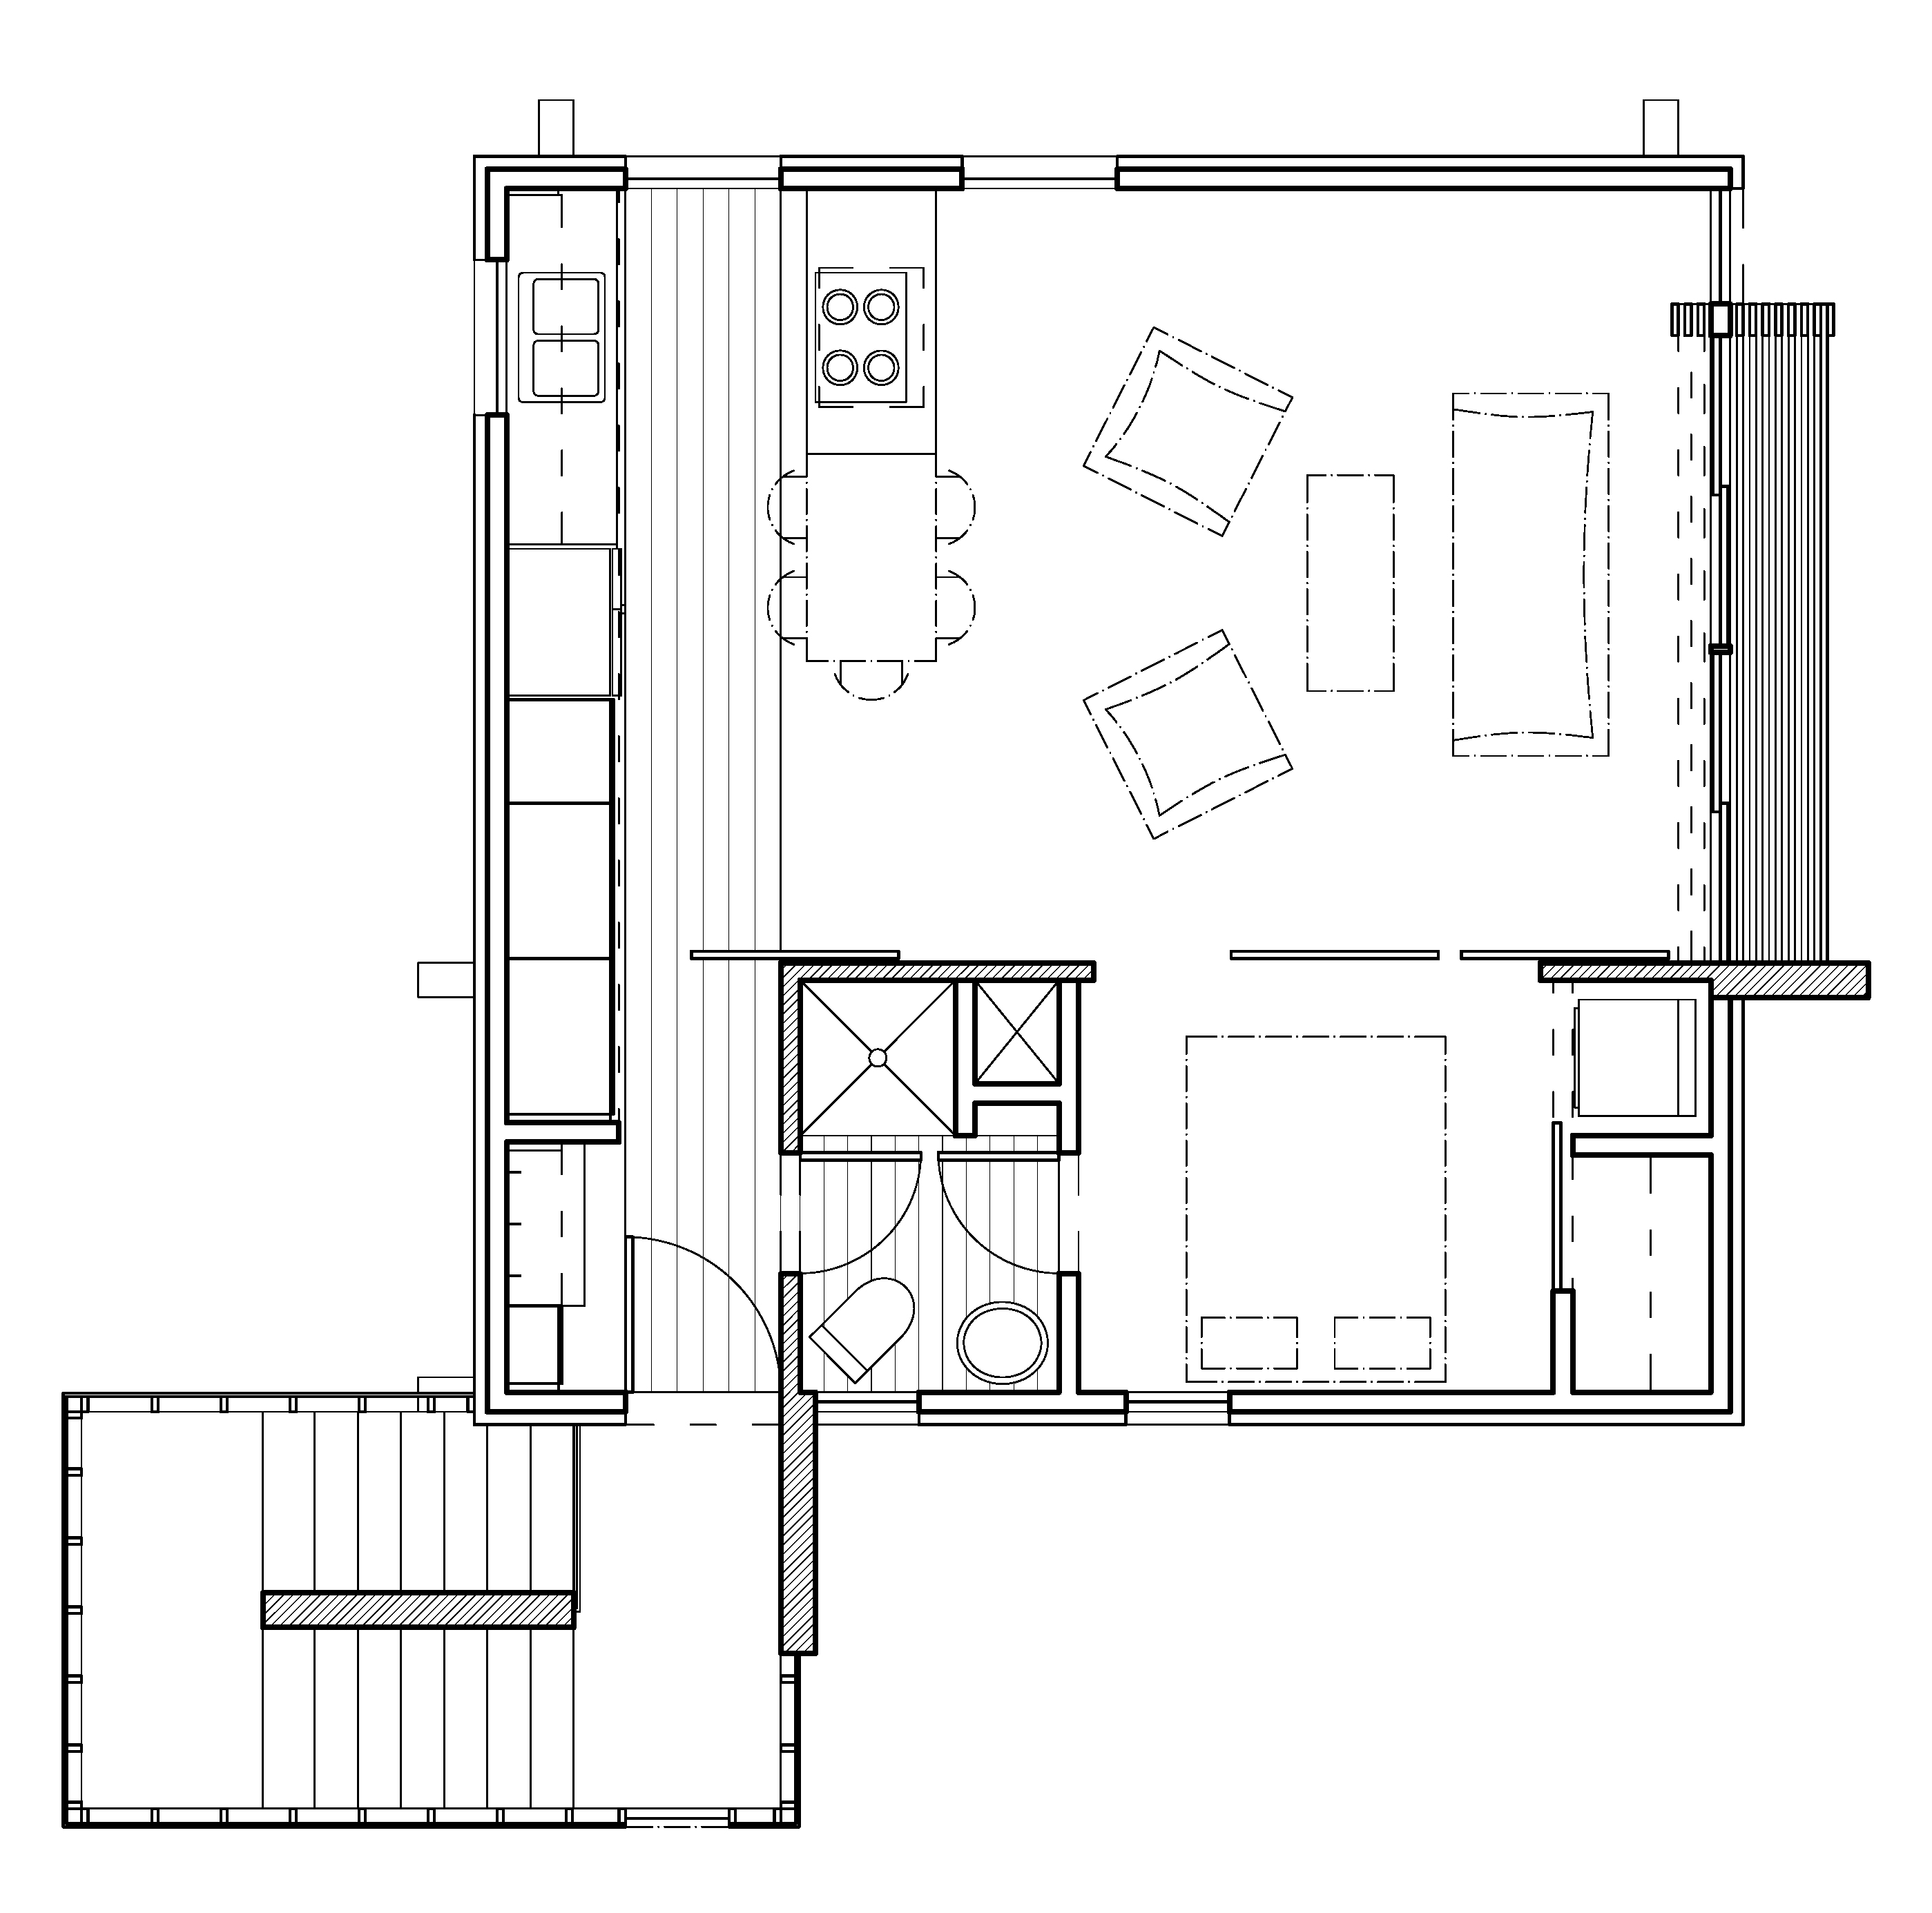 Modern house plans contemporary home designs floor plan 04 for Cool modern house plans